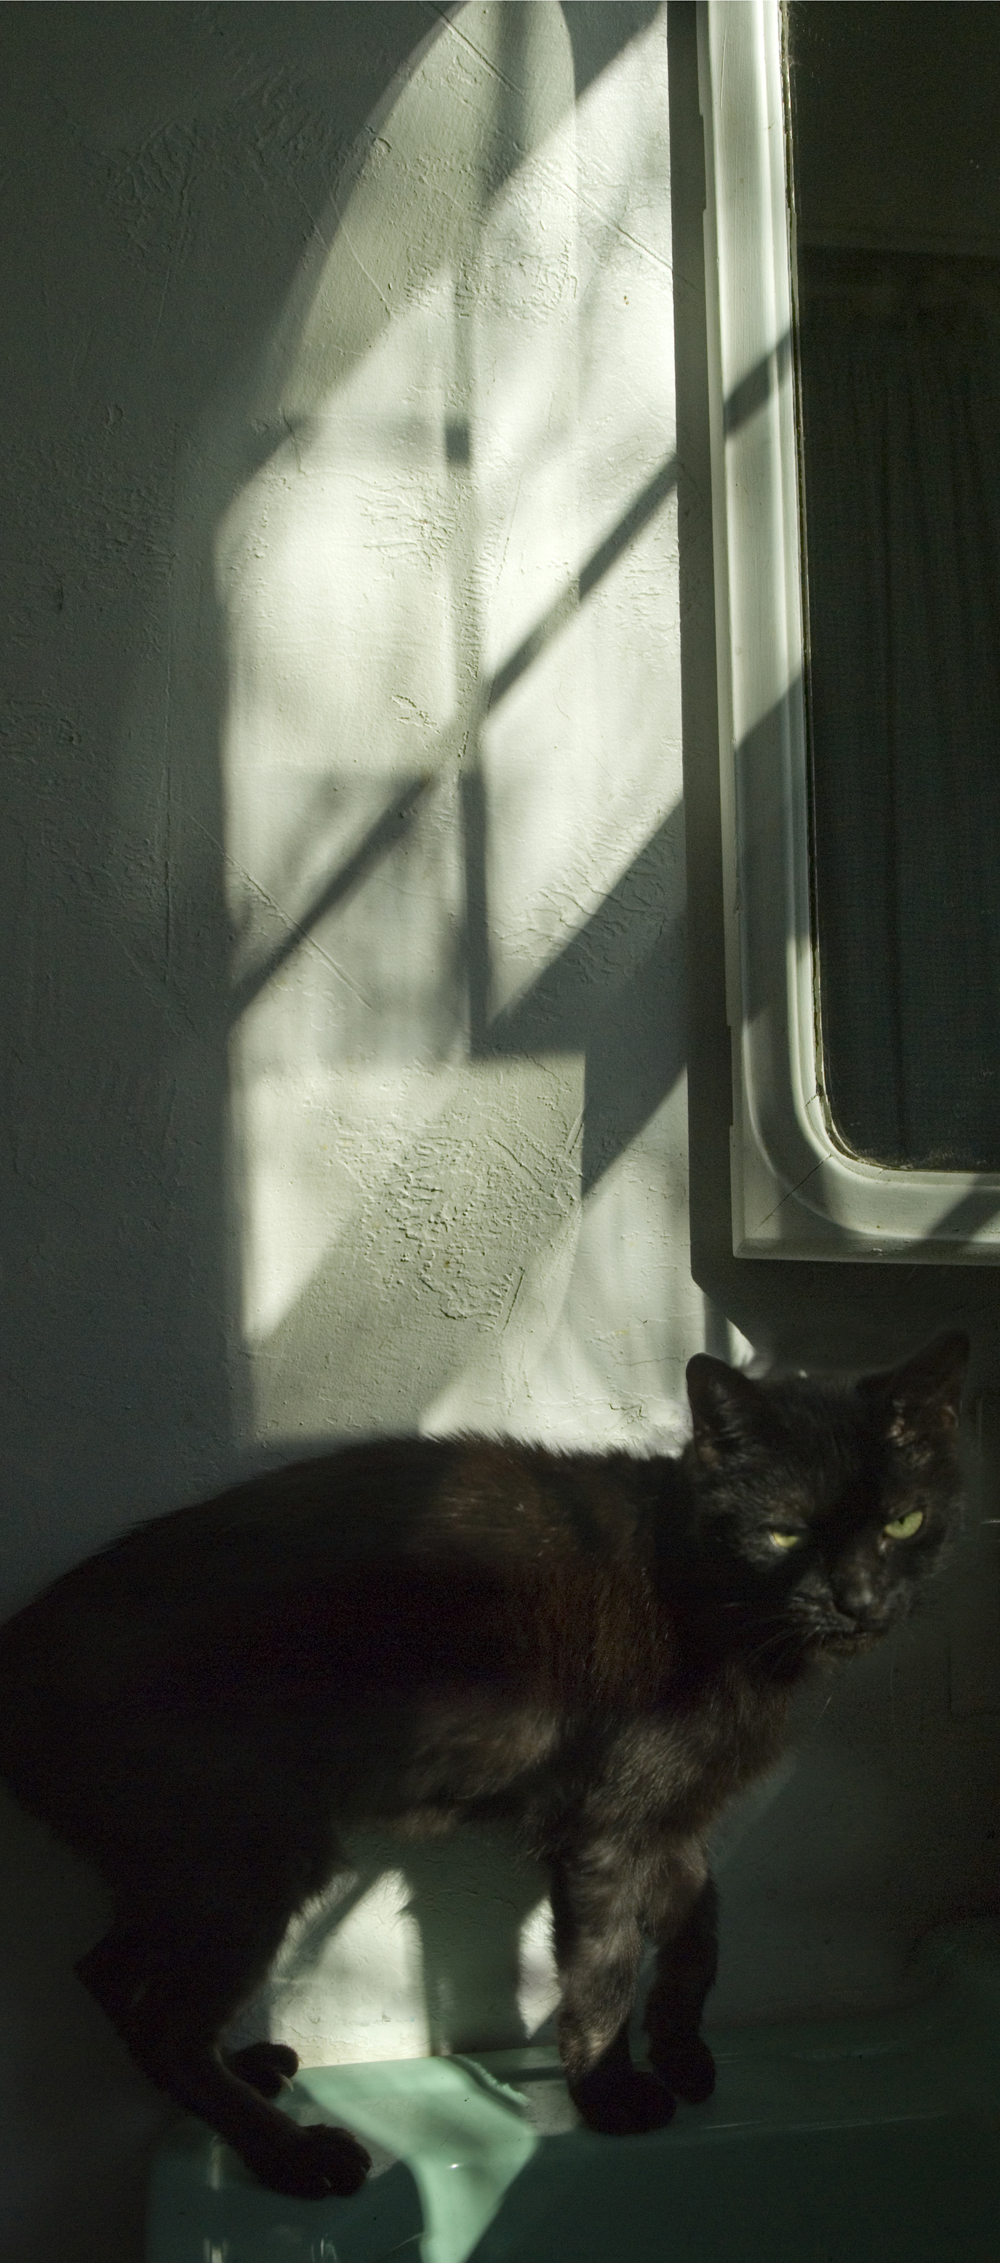 black cat on green sink with reflected light.